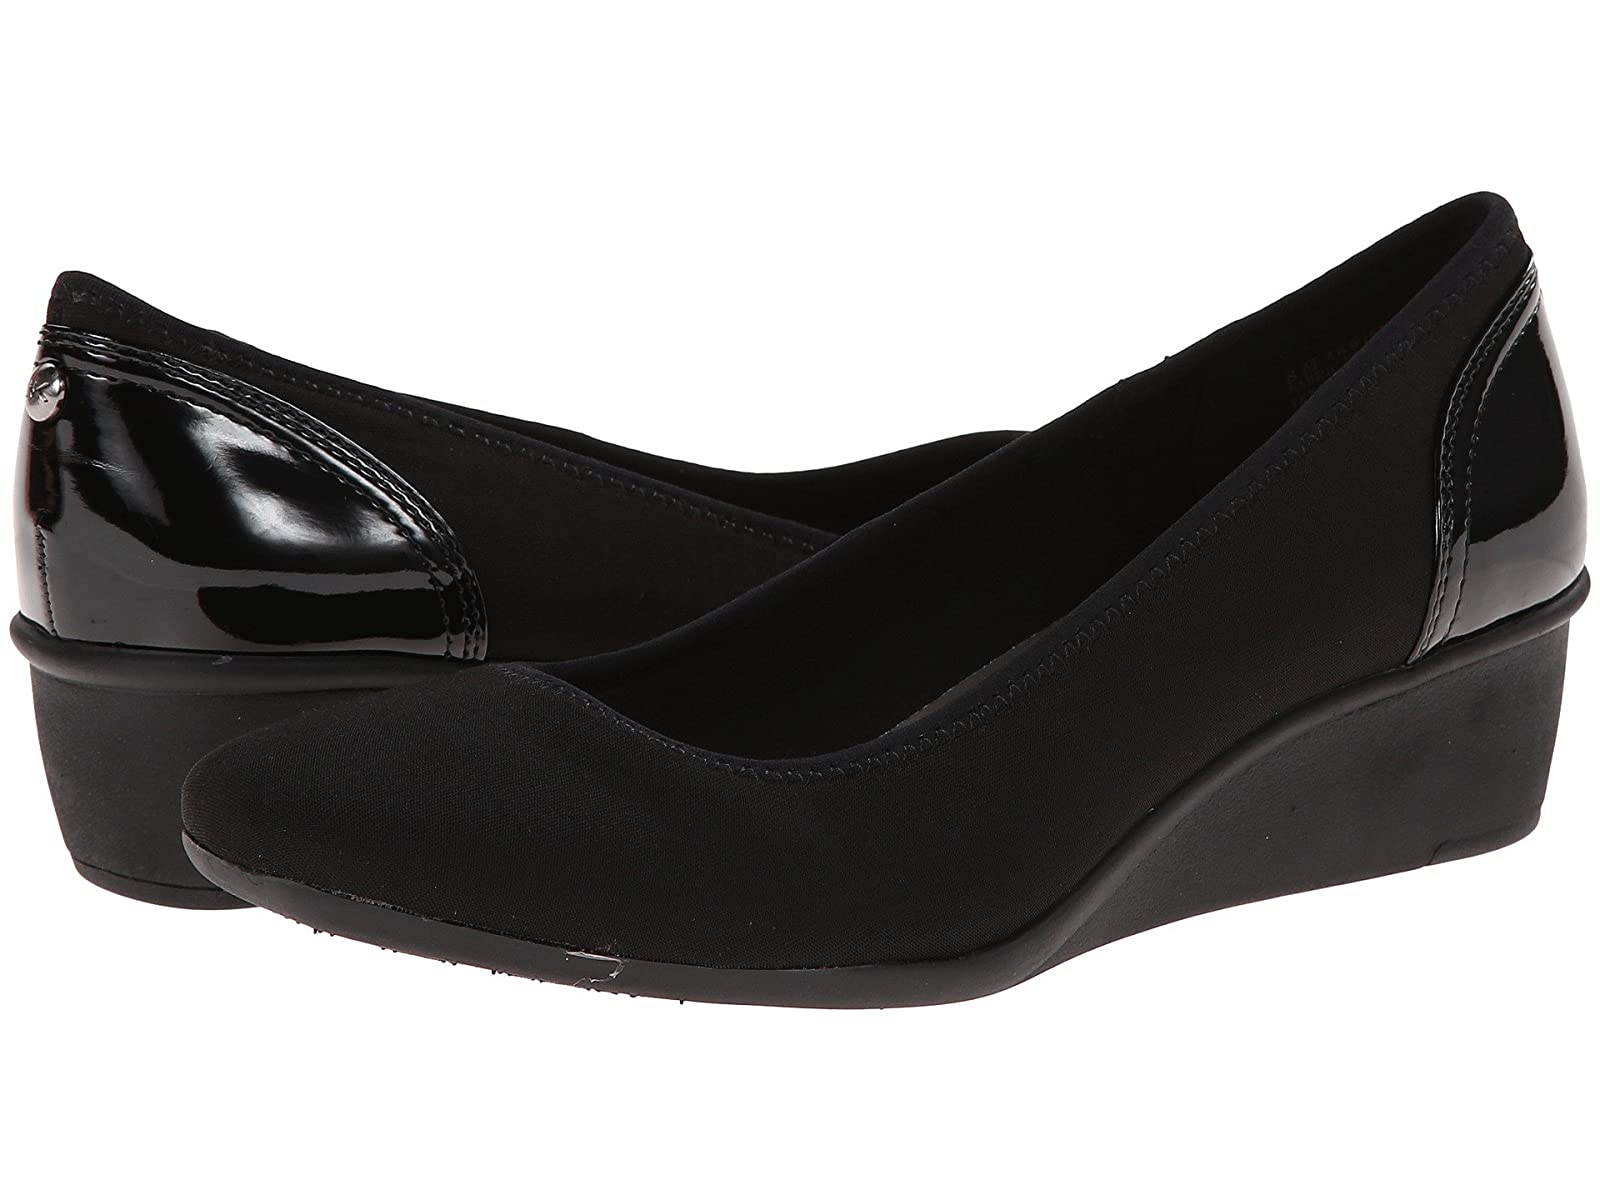 Anne Klein WisherAtmospheric grades have affordable shoes